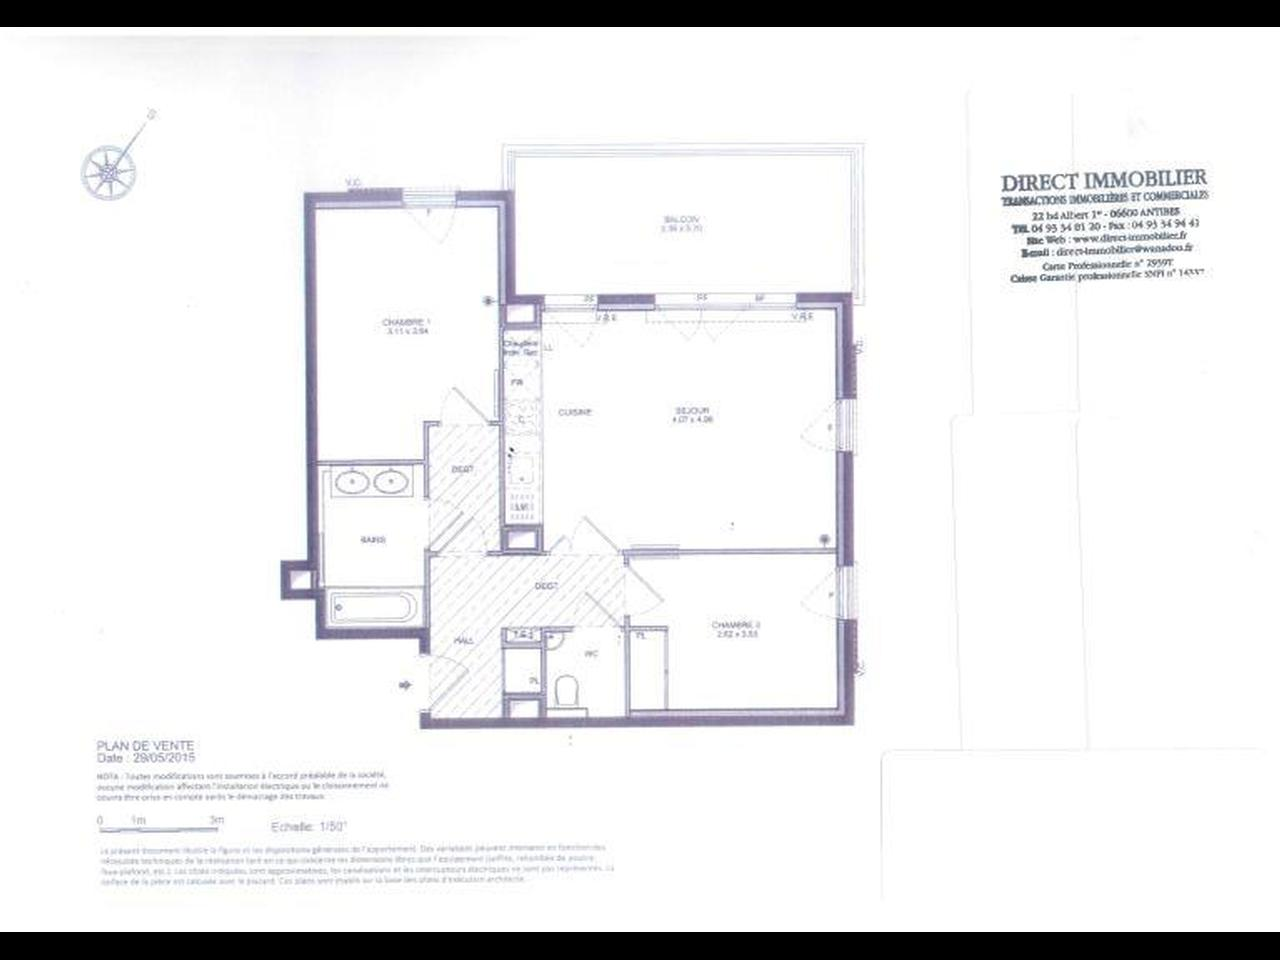 PLAN 3 PIECES 27 TANIT PROMOGIM  1er etage